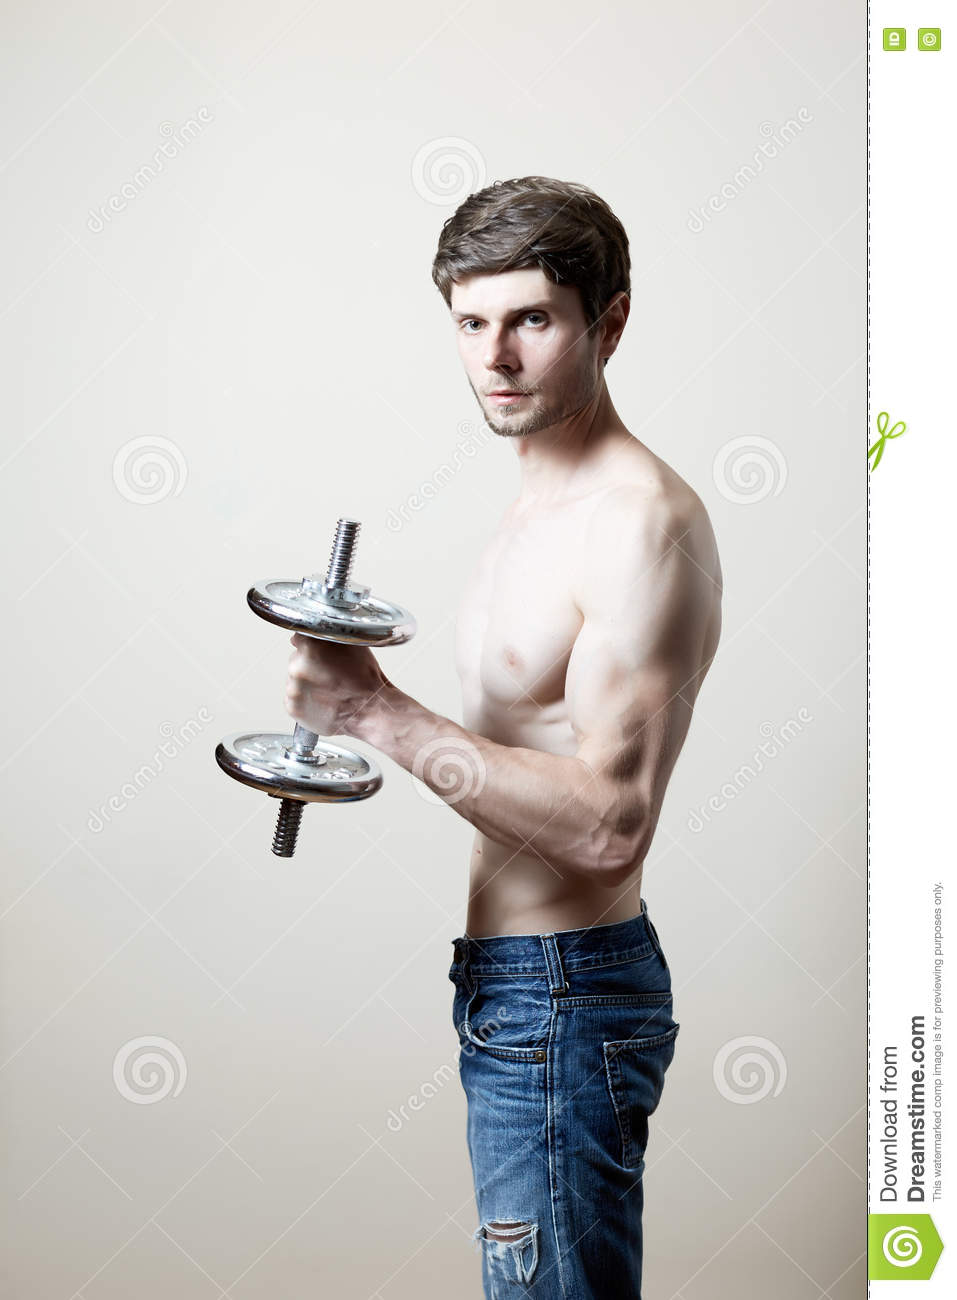 Man lifting dumbbell stock photo  Image of people, toned